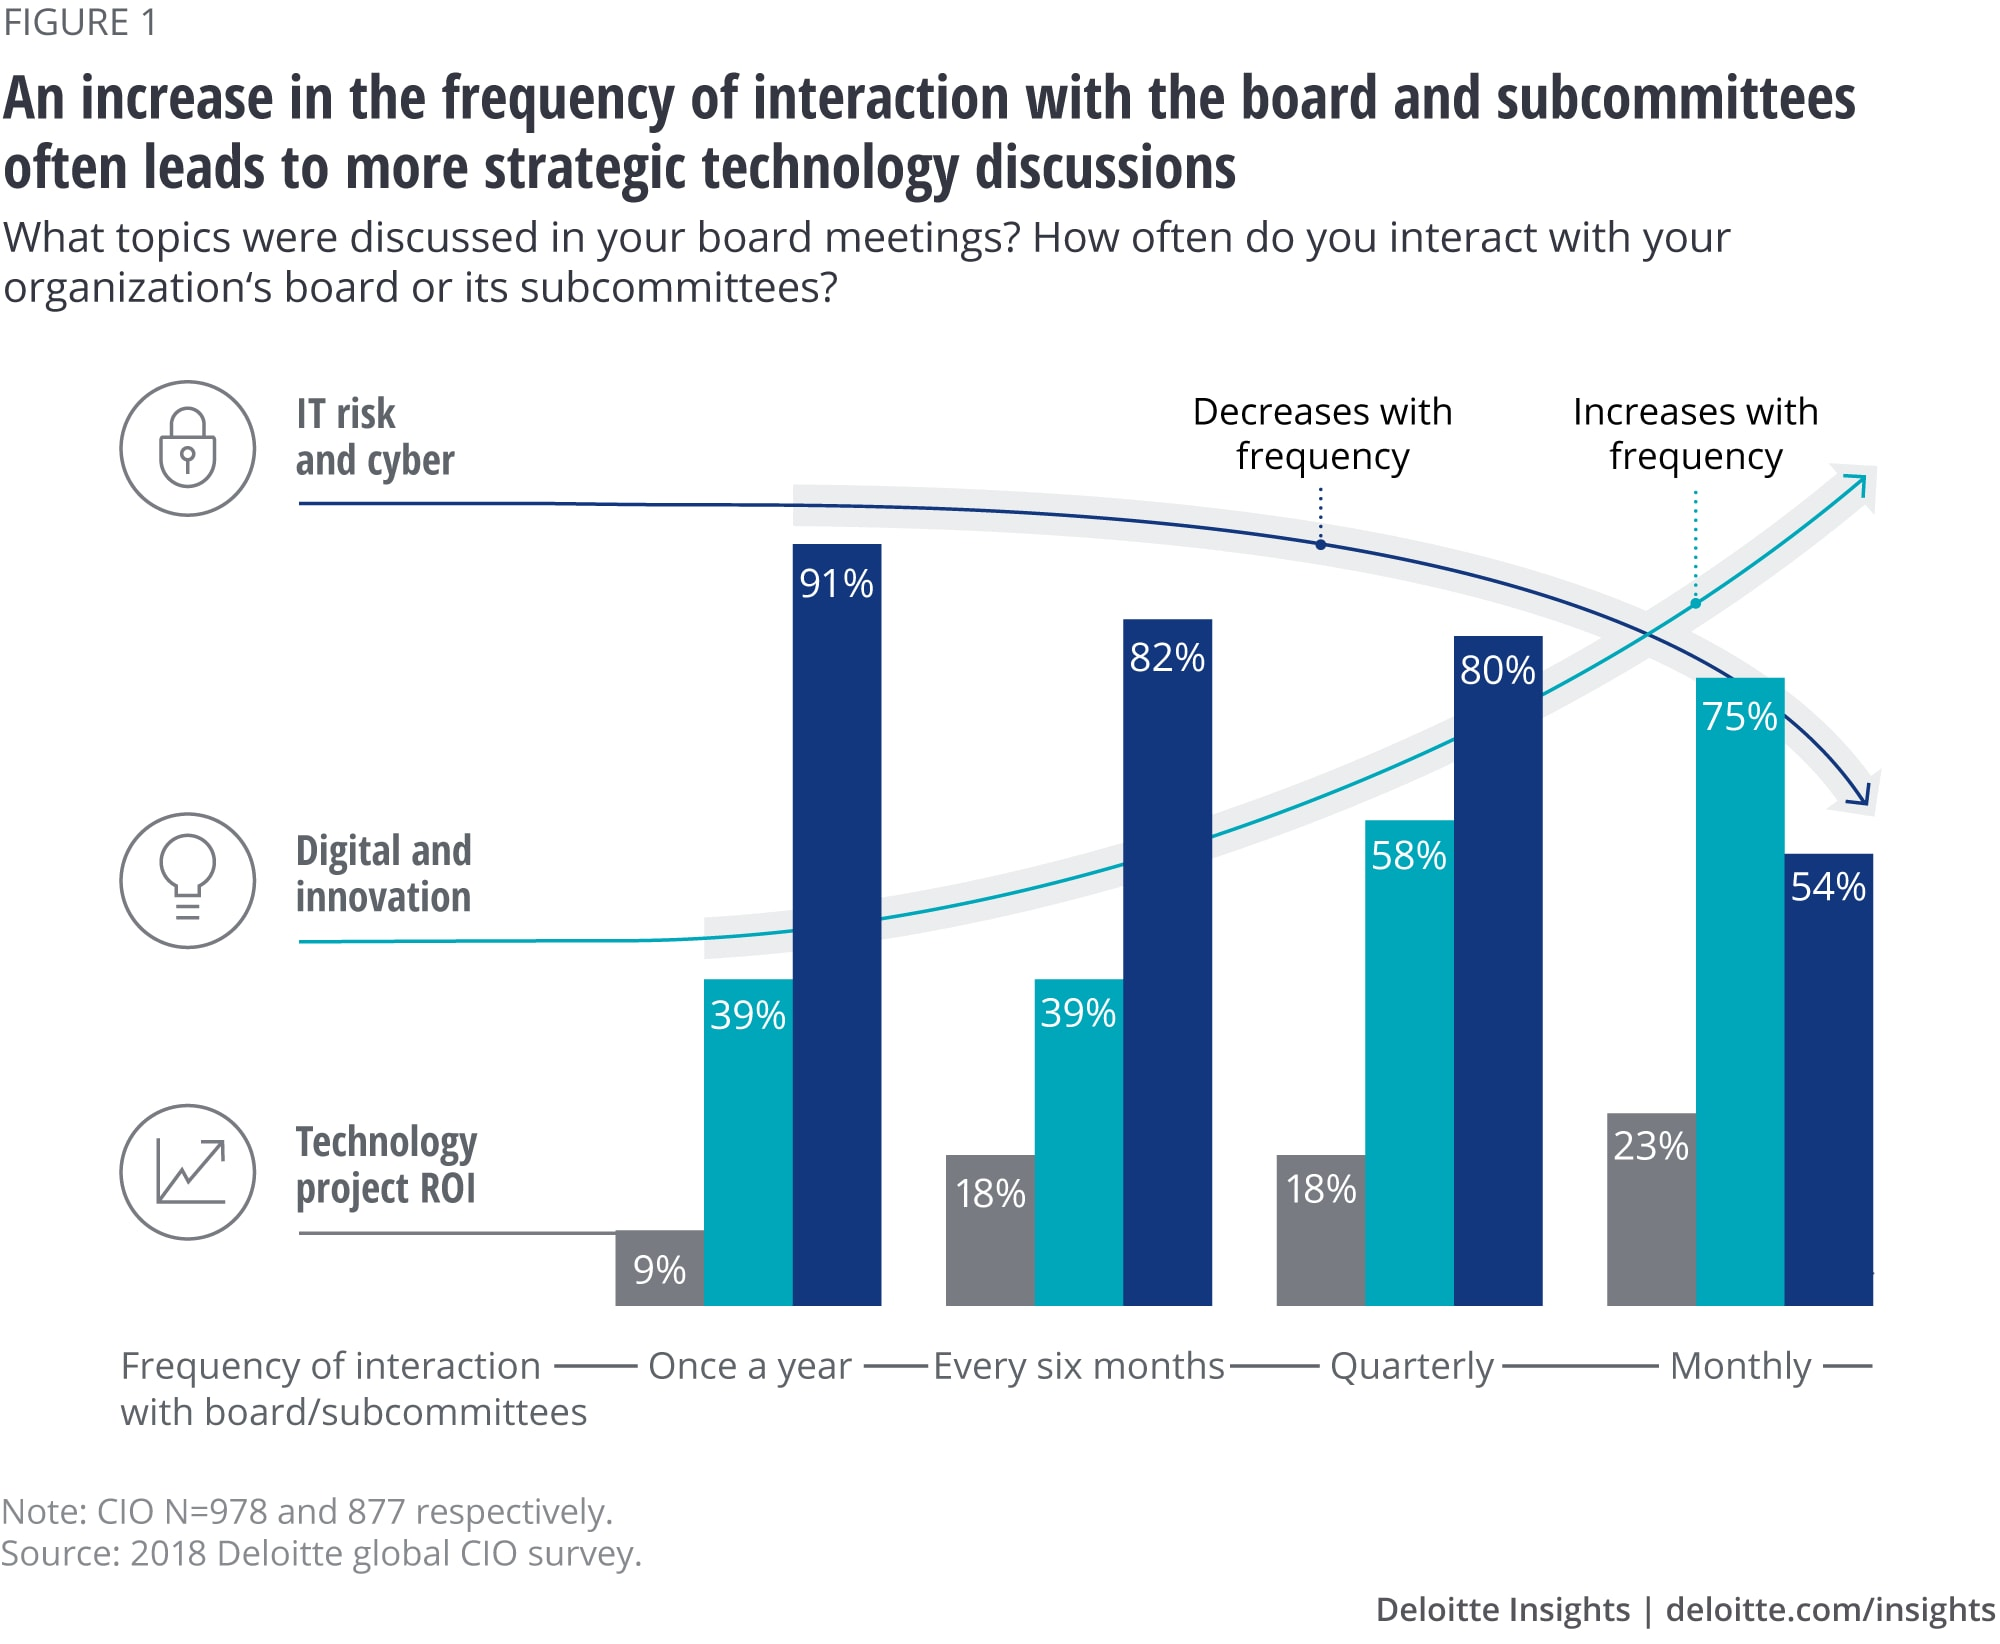 An increase in the frequency of interaction with the board and subcommittees often leads to more strategic technology discussions